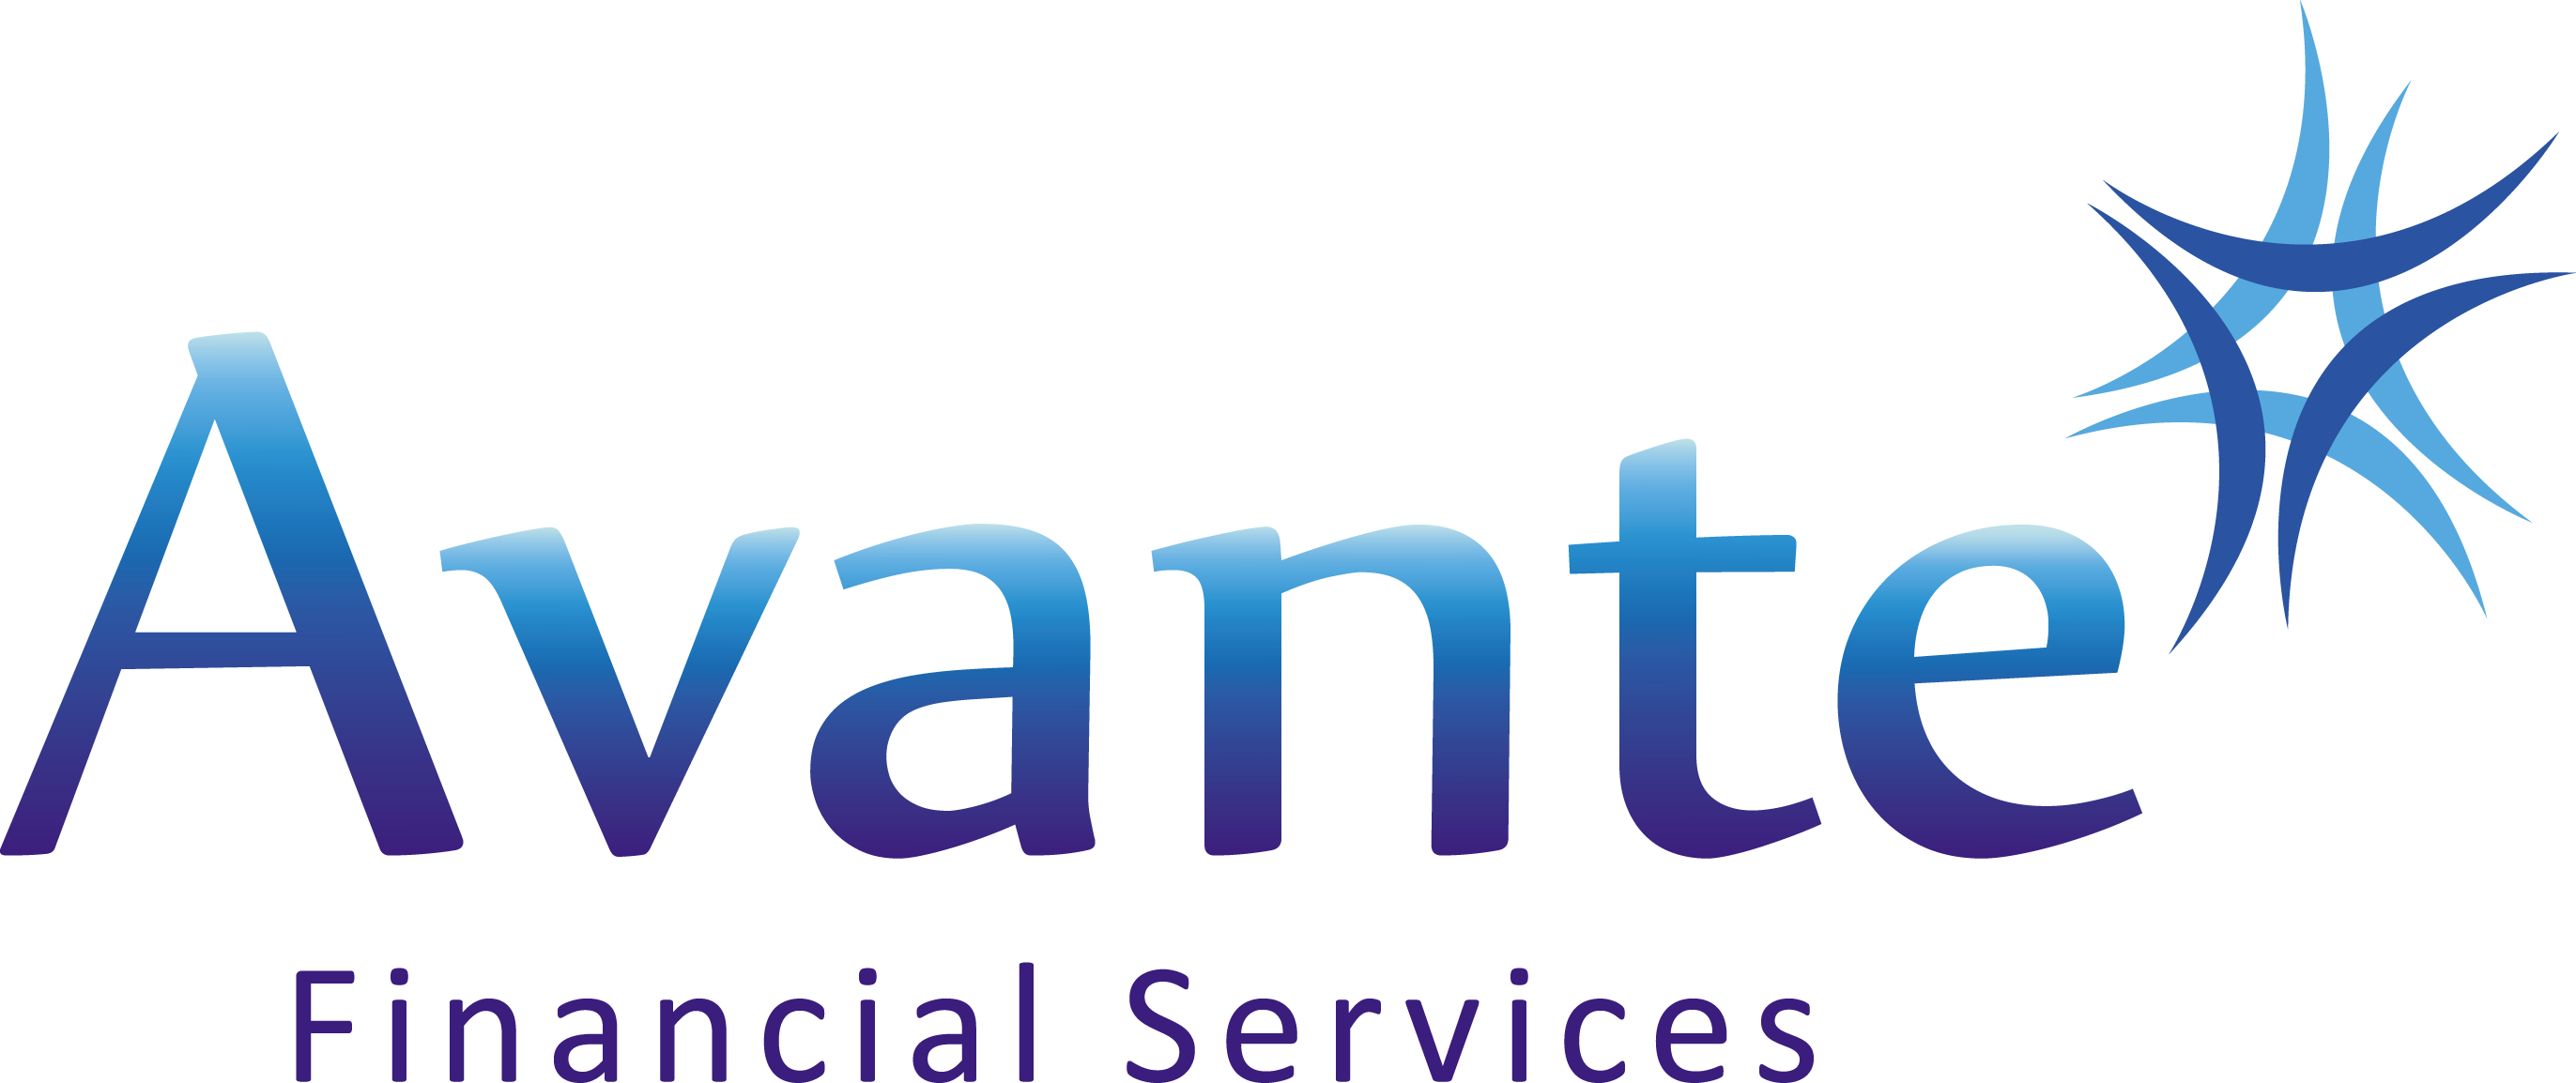 Avante Financial Services